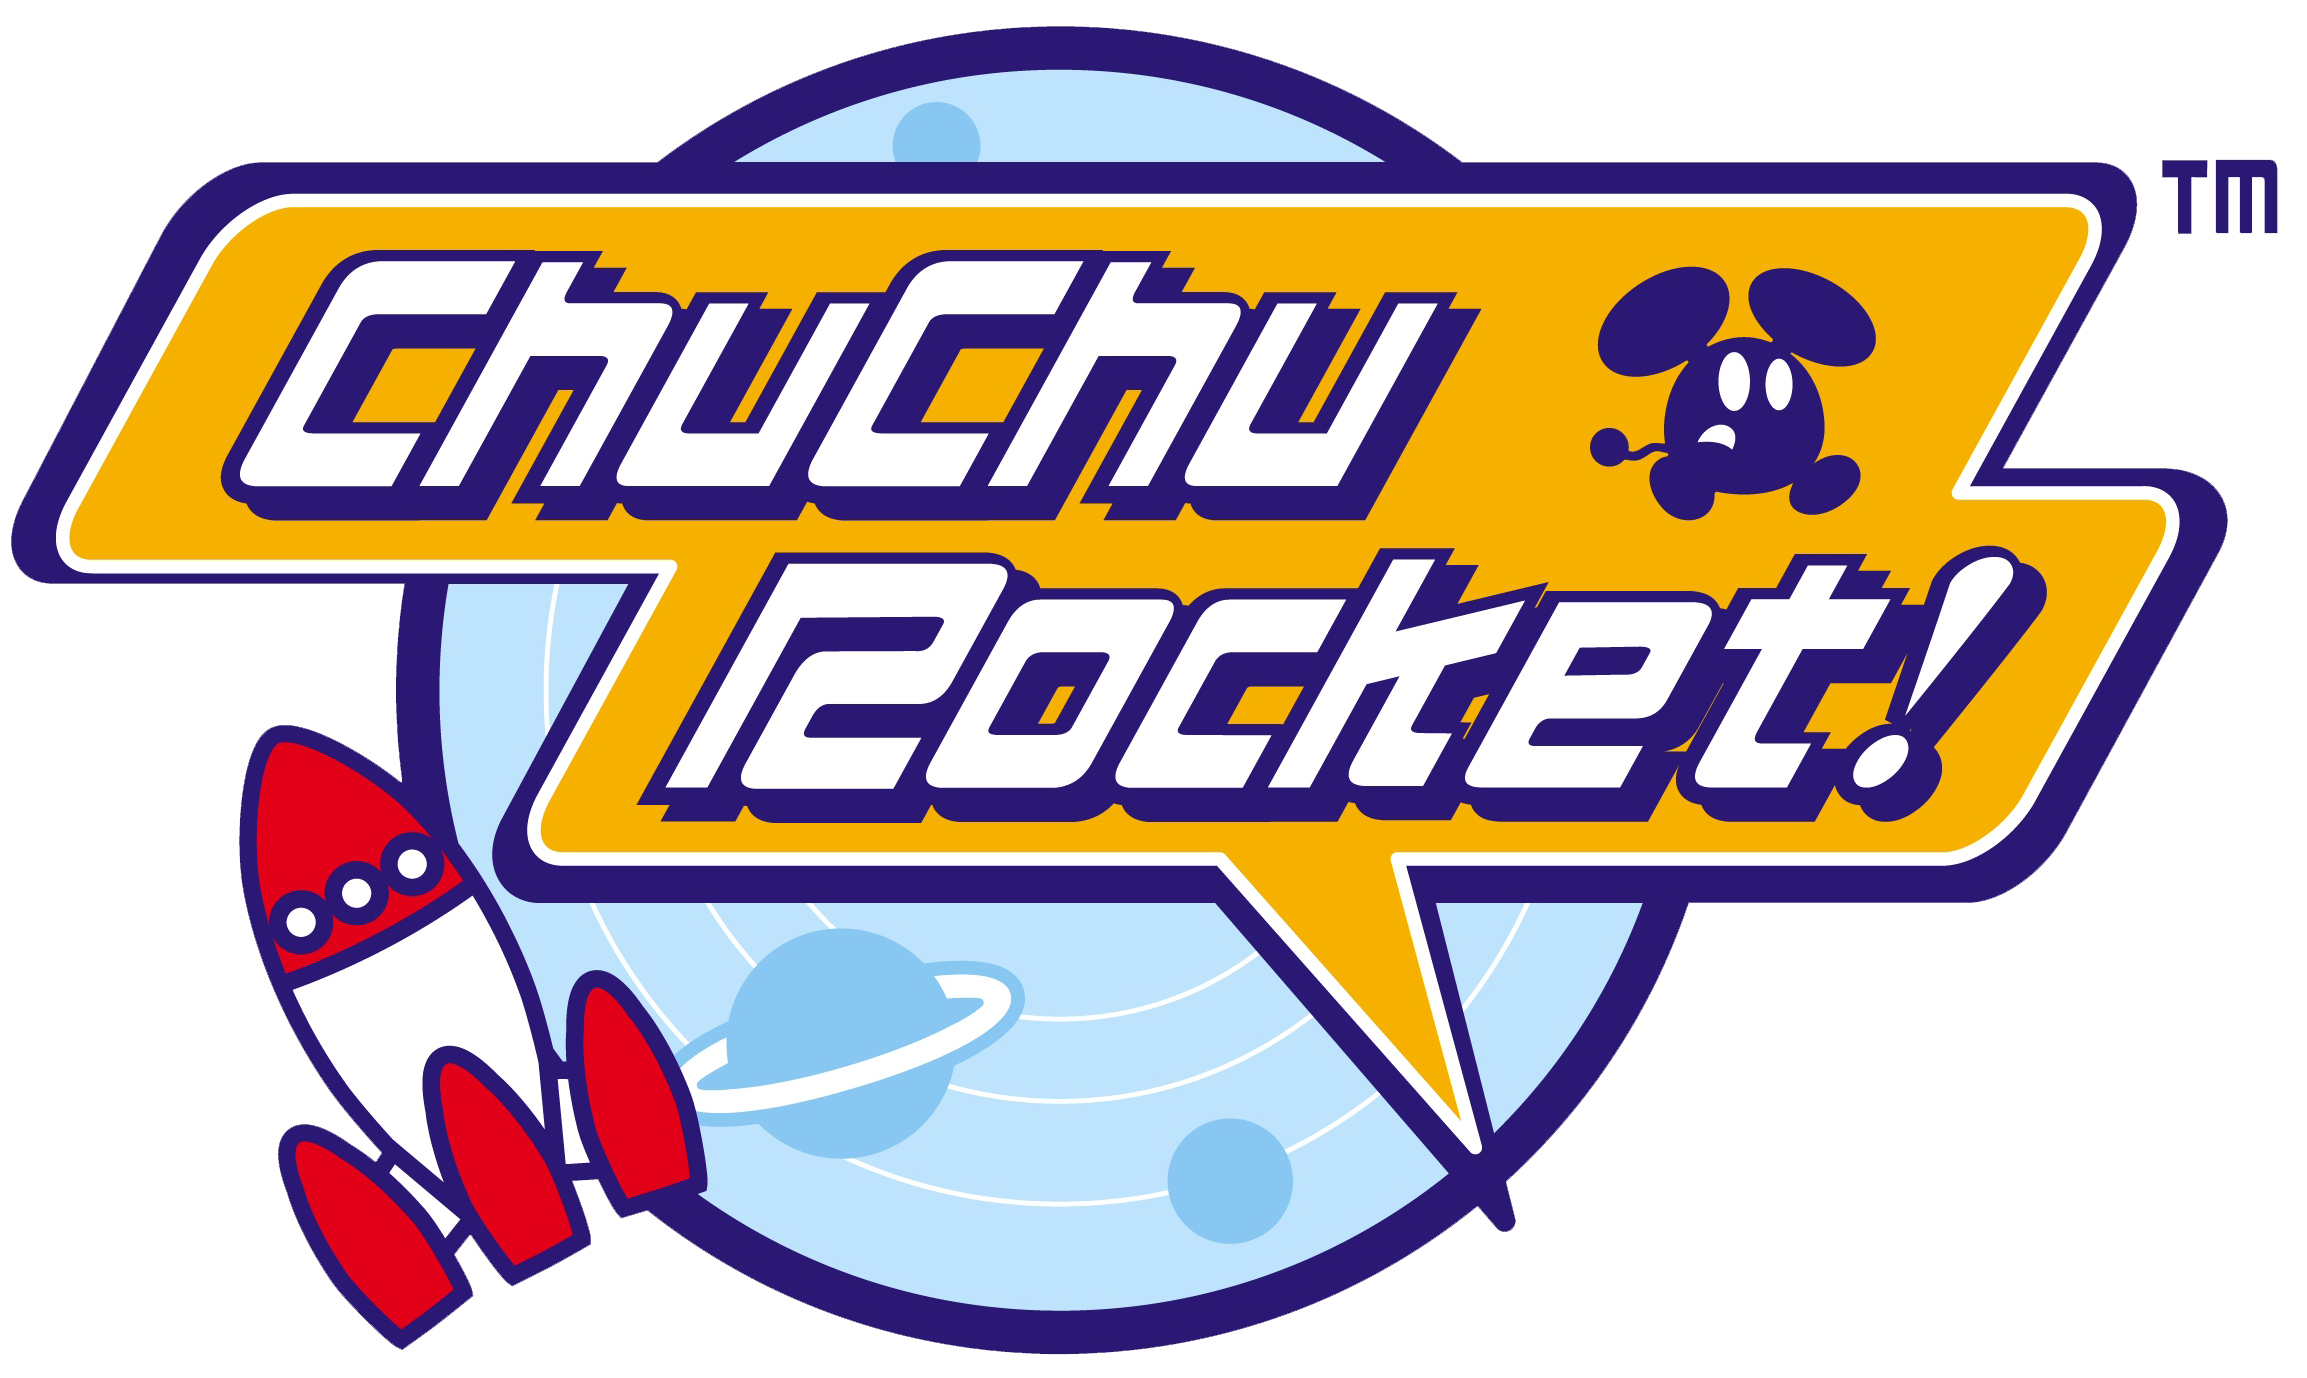 Chu Chu Rocket! Coming To XBLA?